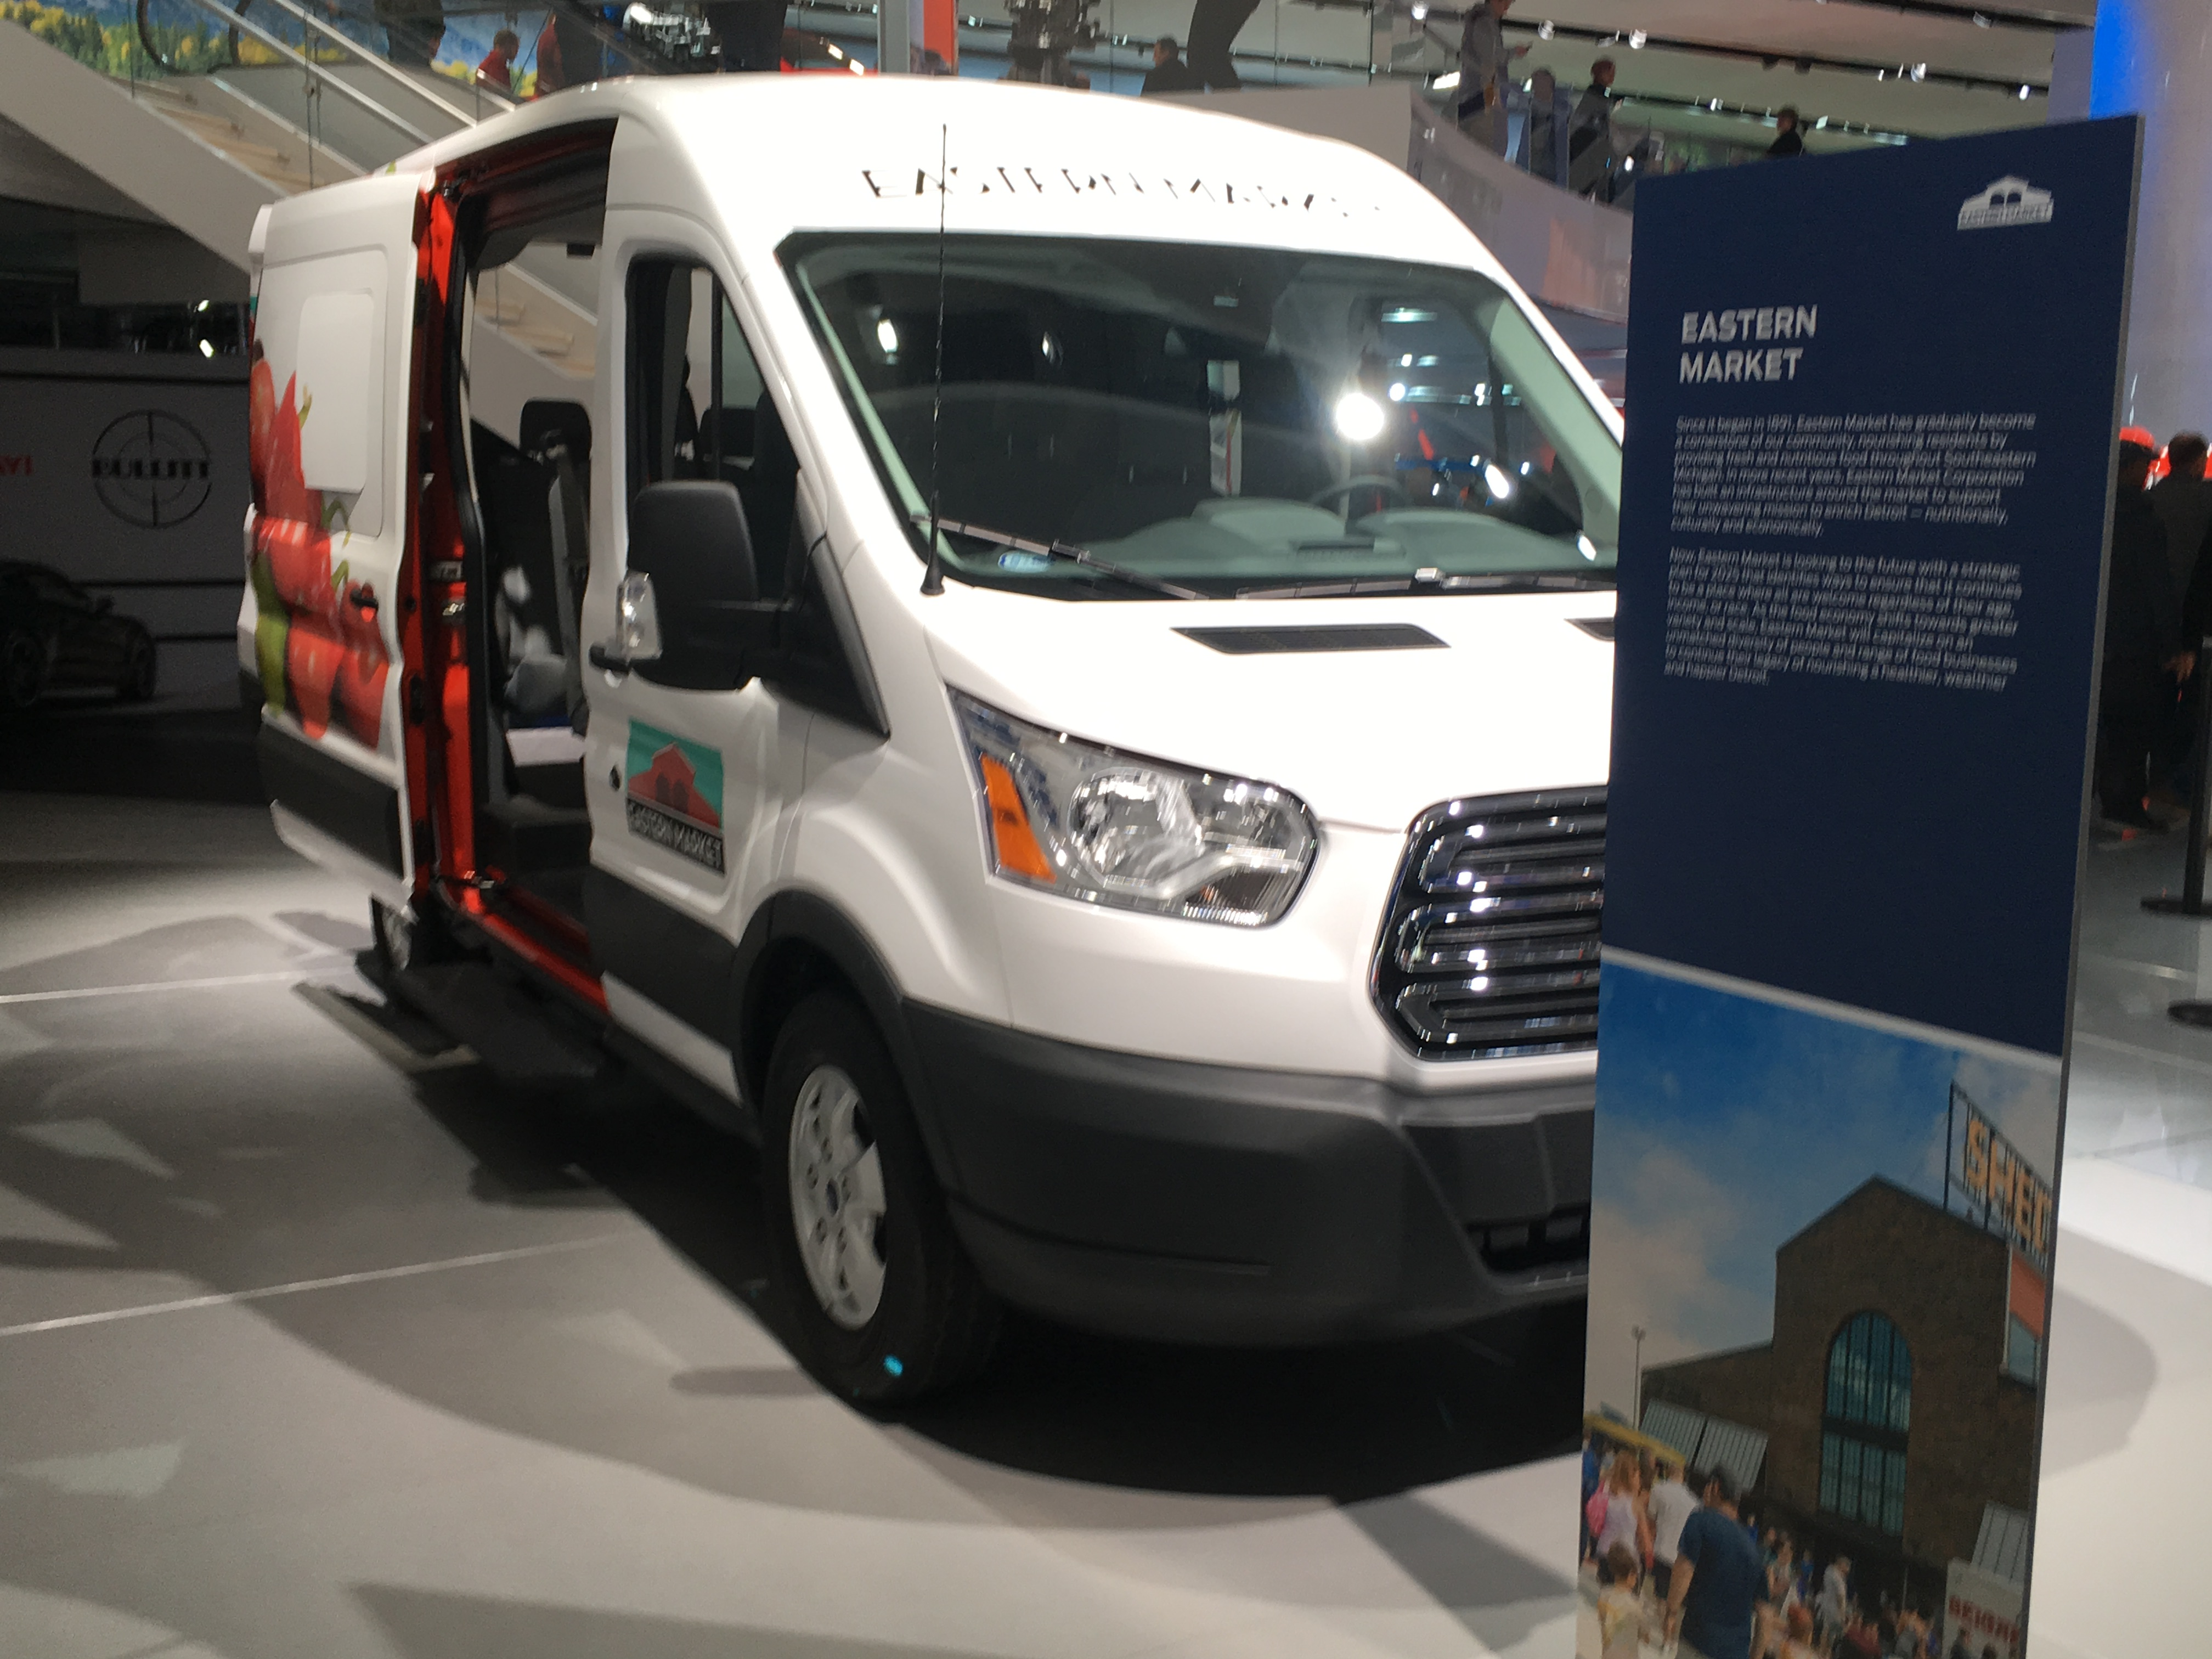 Ford Transport involved with Eastern Market and Ford partnership project